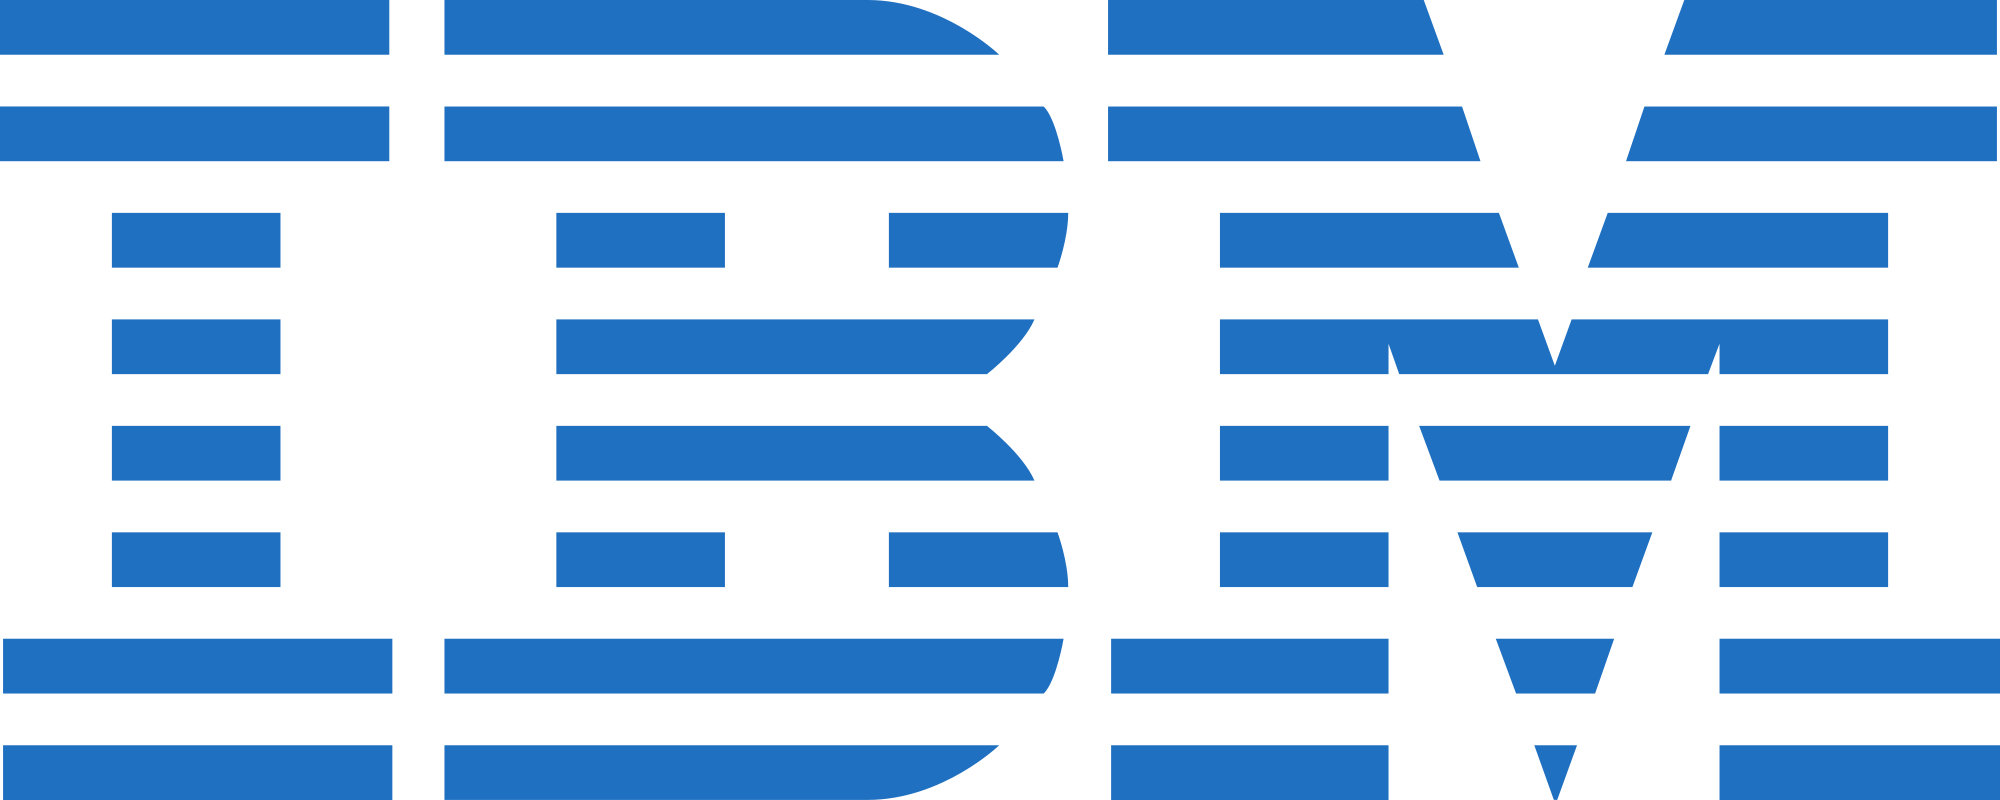 IBM Introduces New Developer Tools for Financial Services